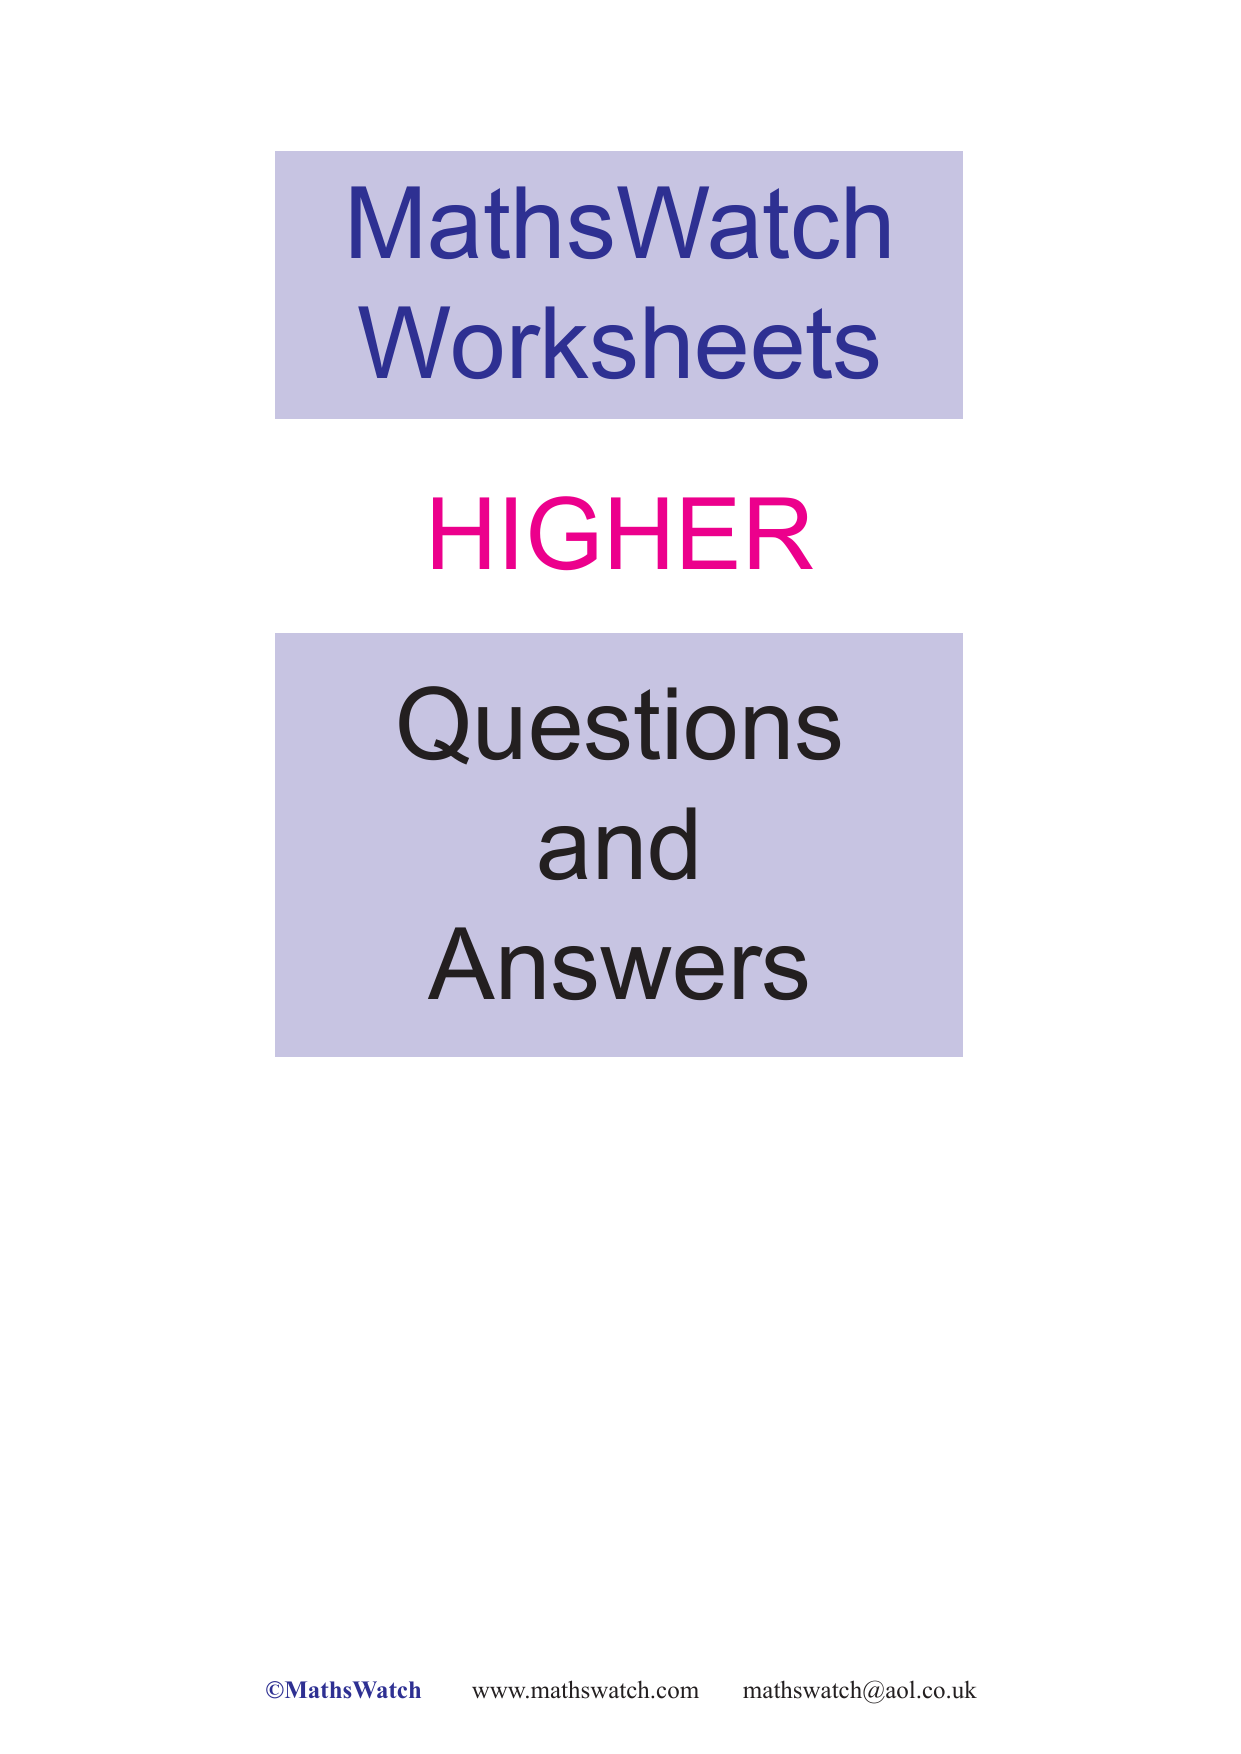 mathswatch-higher-worksheets-aw